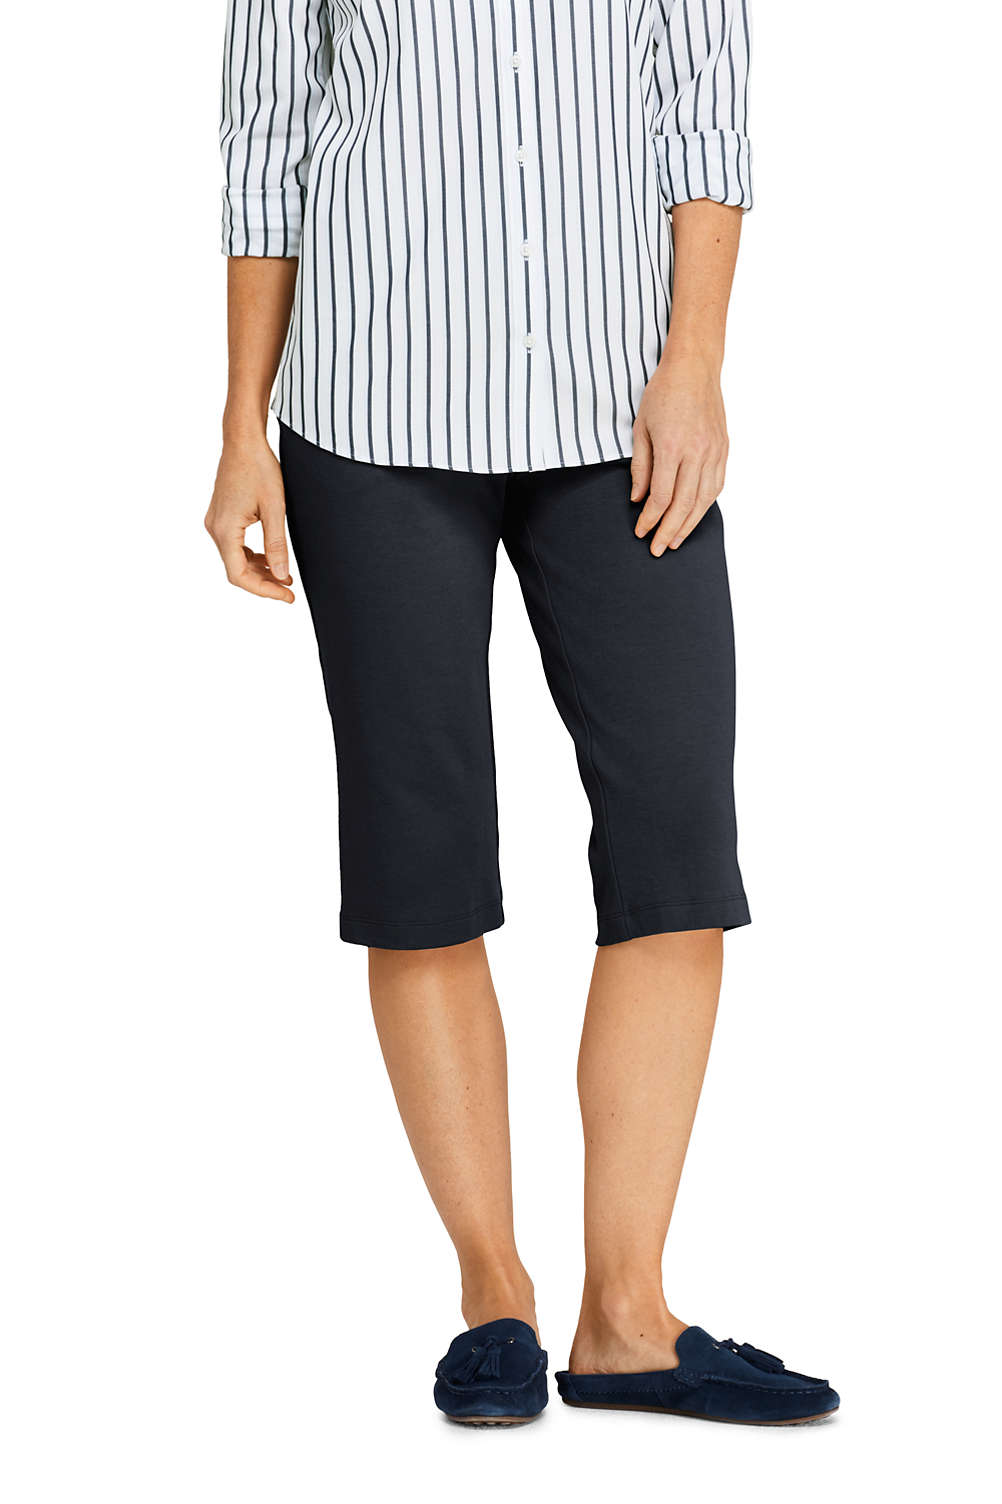 4de31d2c331cf Women's Sport Knit Elastic Waist Pull On Capri Pants from Lands' End